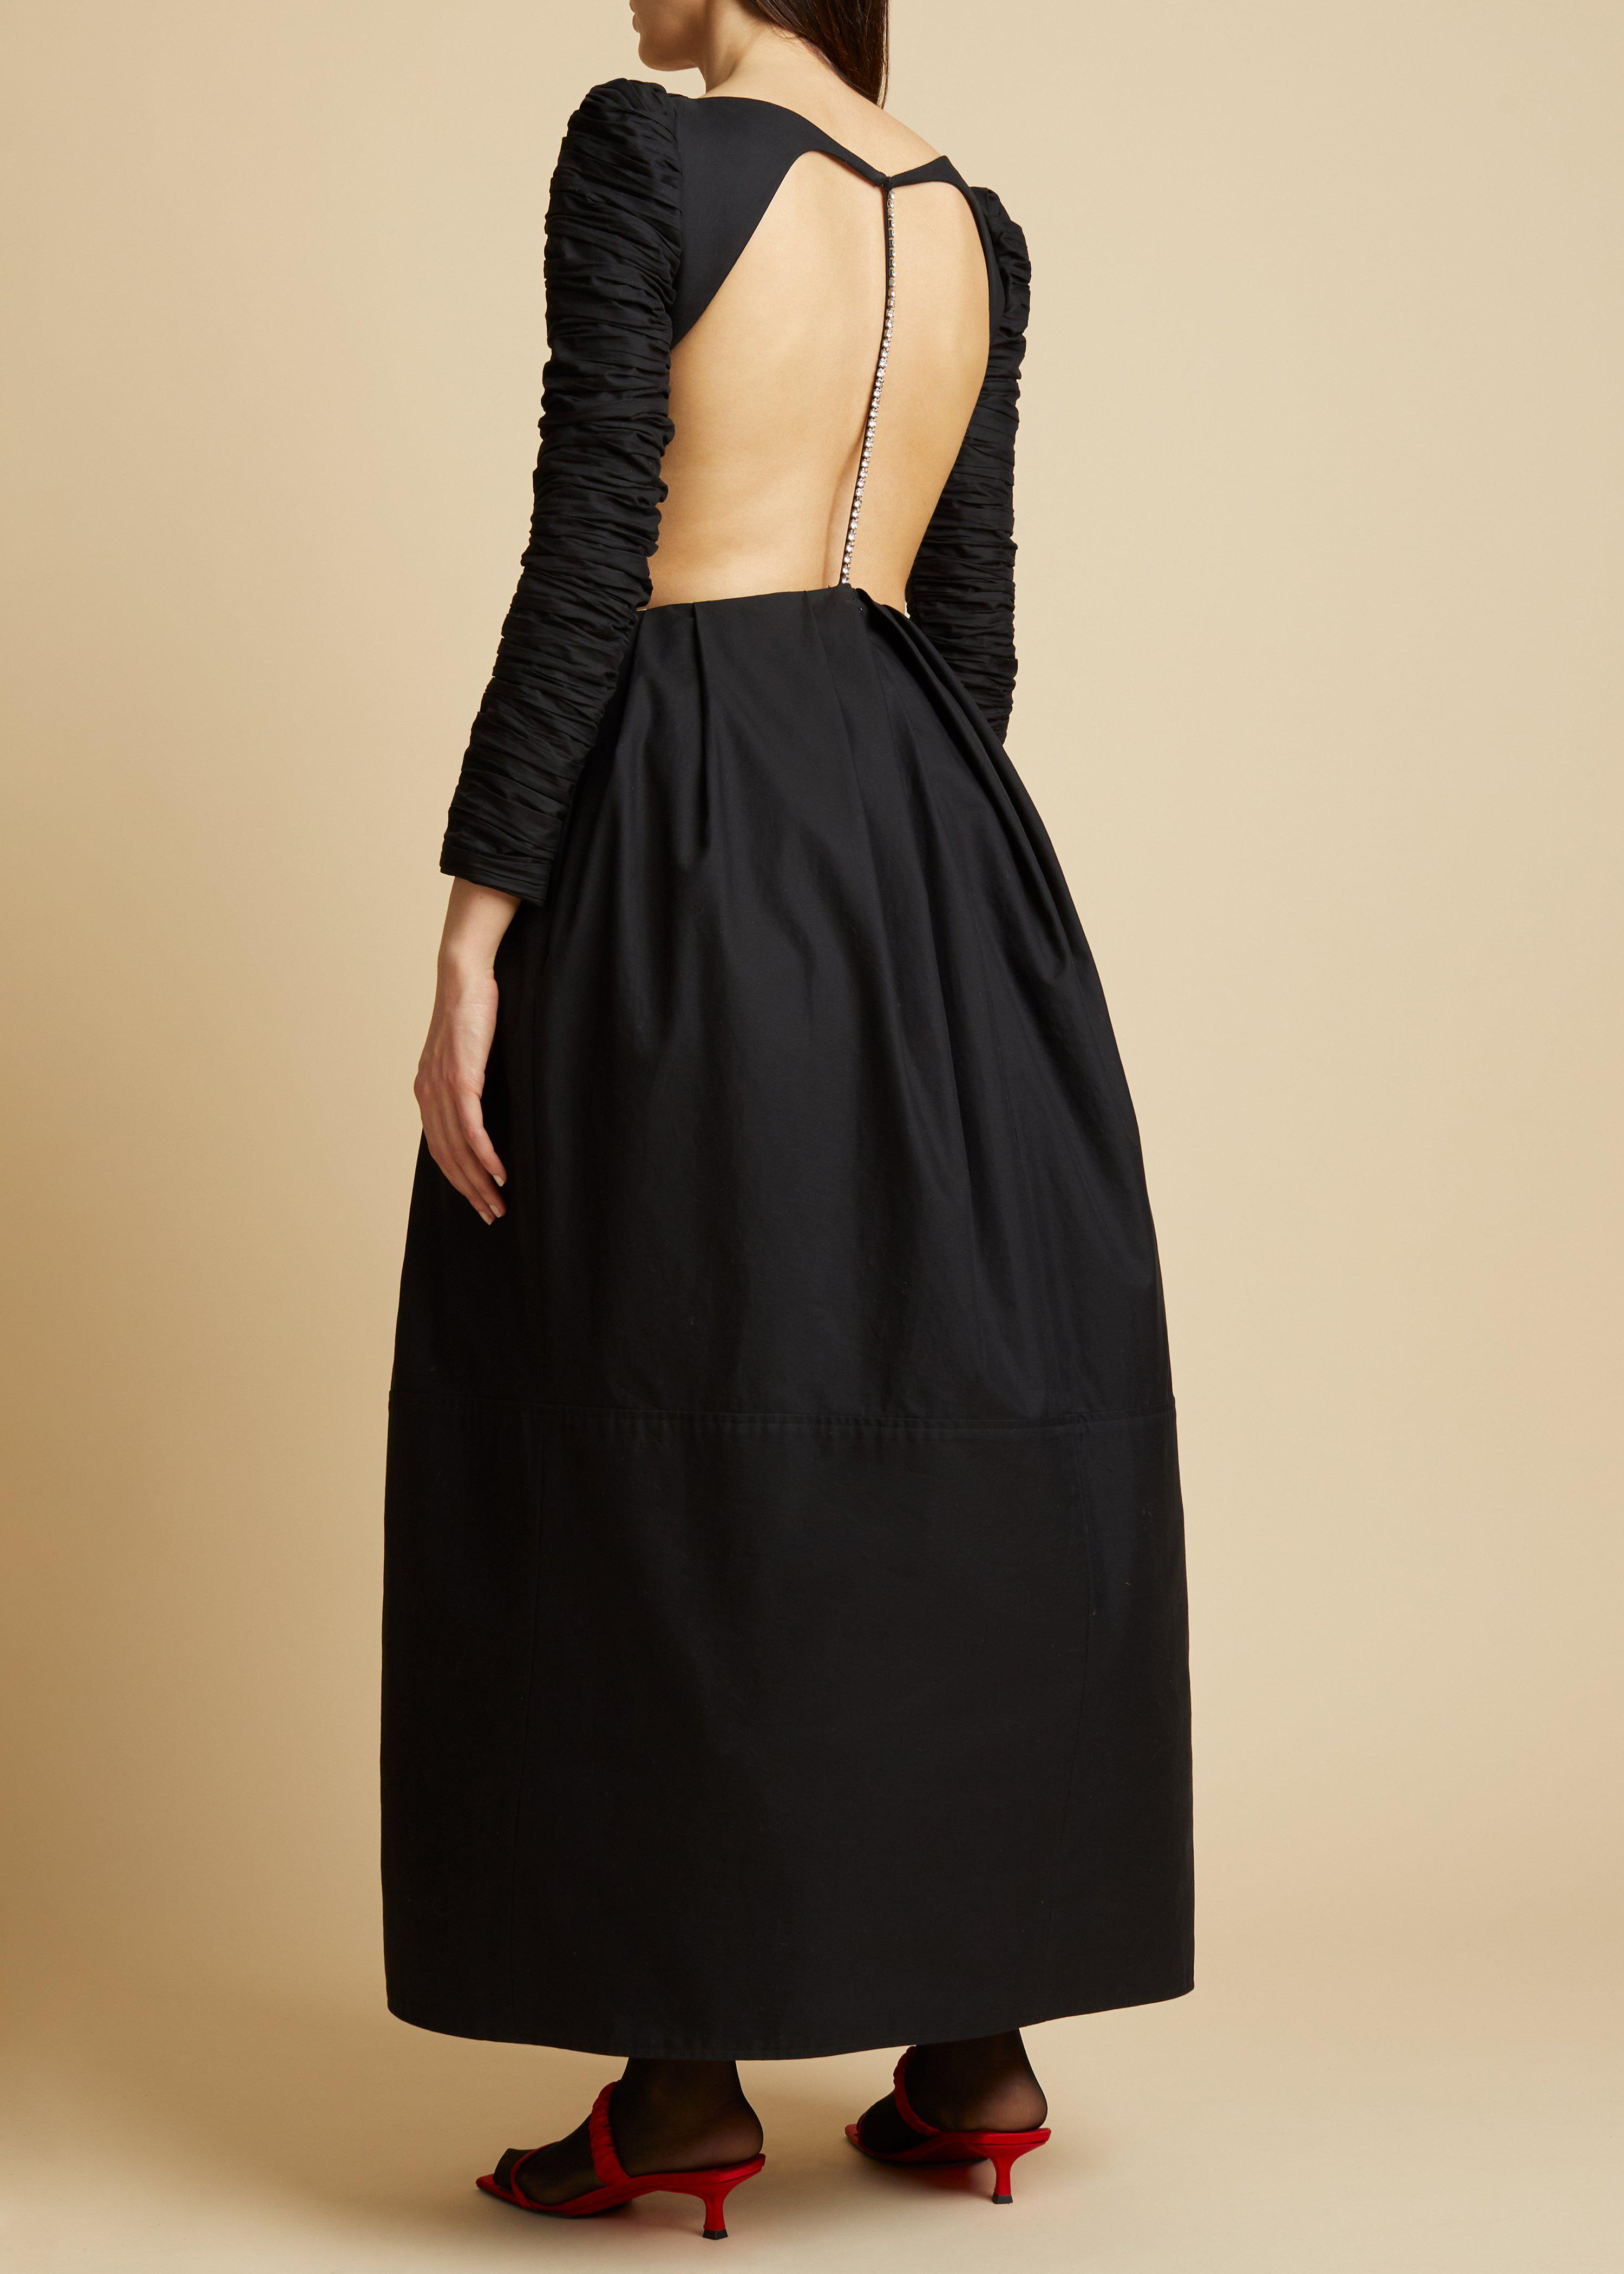 The Rosaline Dress with Petticoat in Black 2